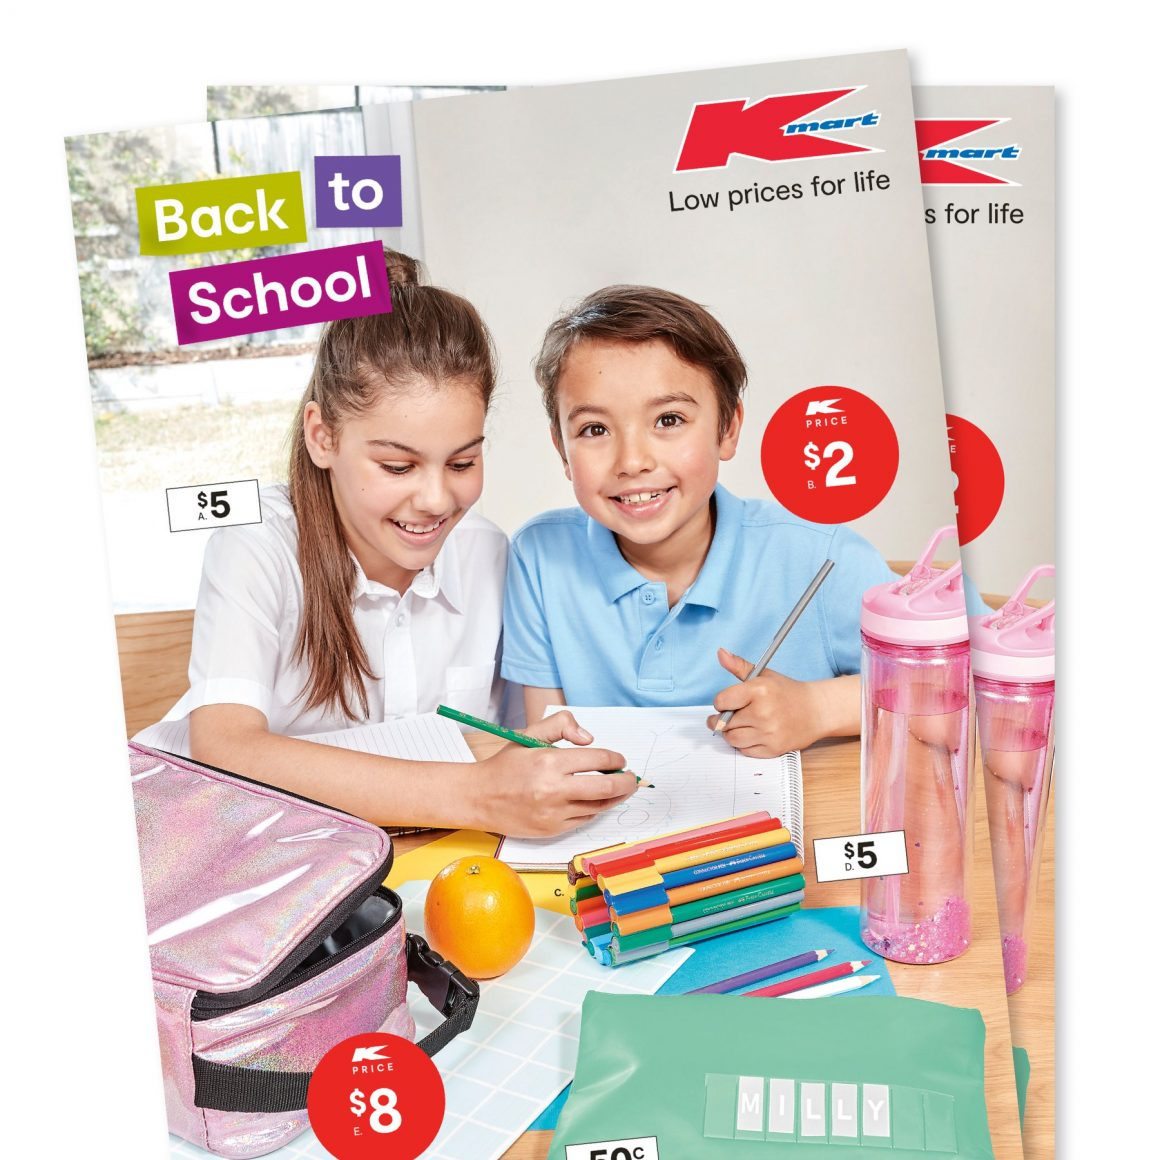 Back to School with Kmart